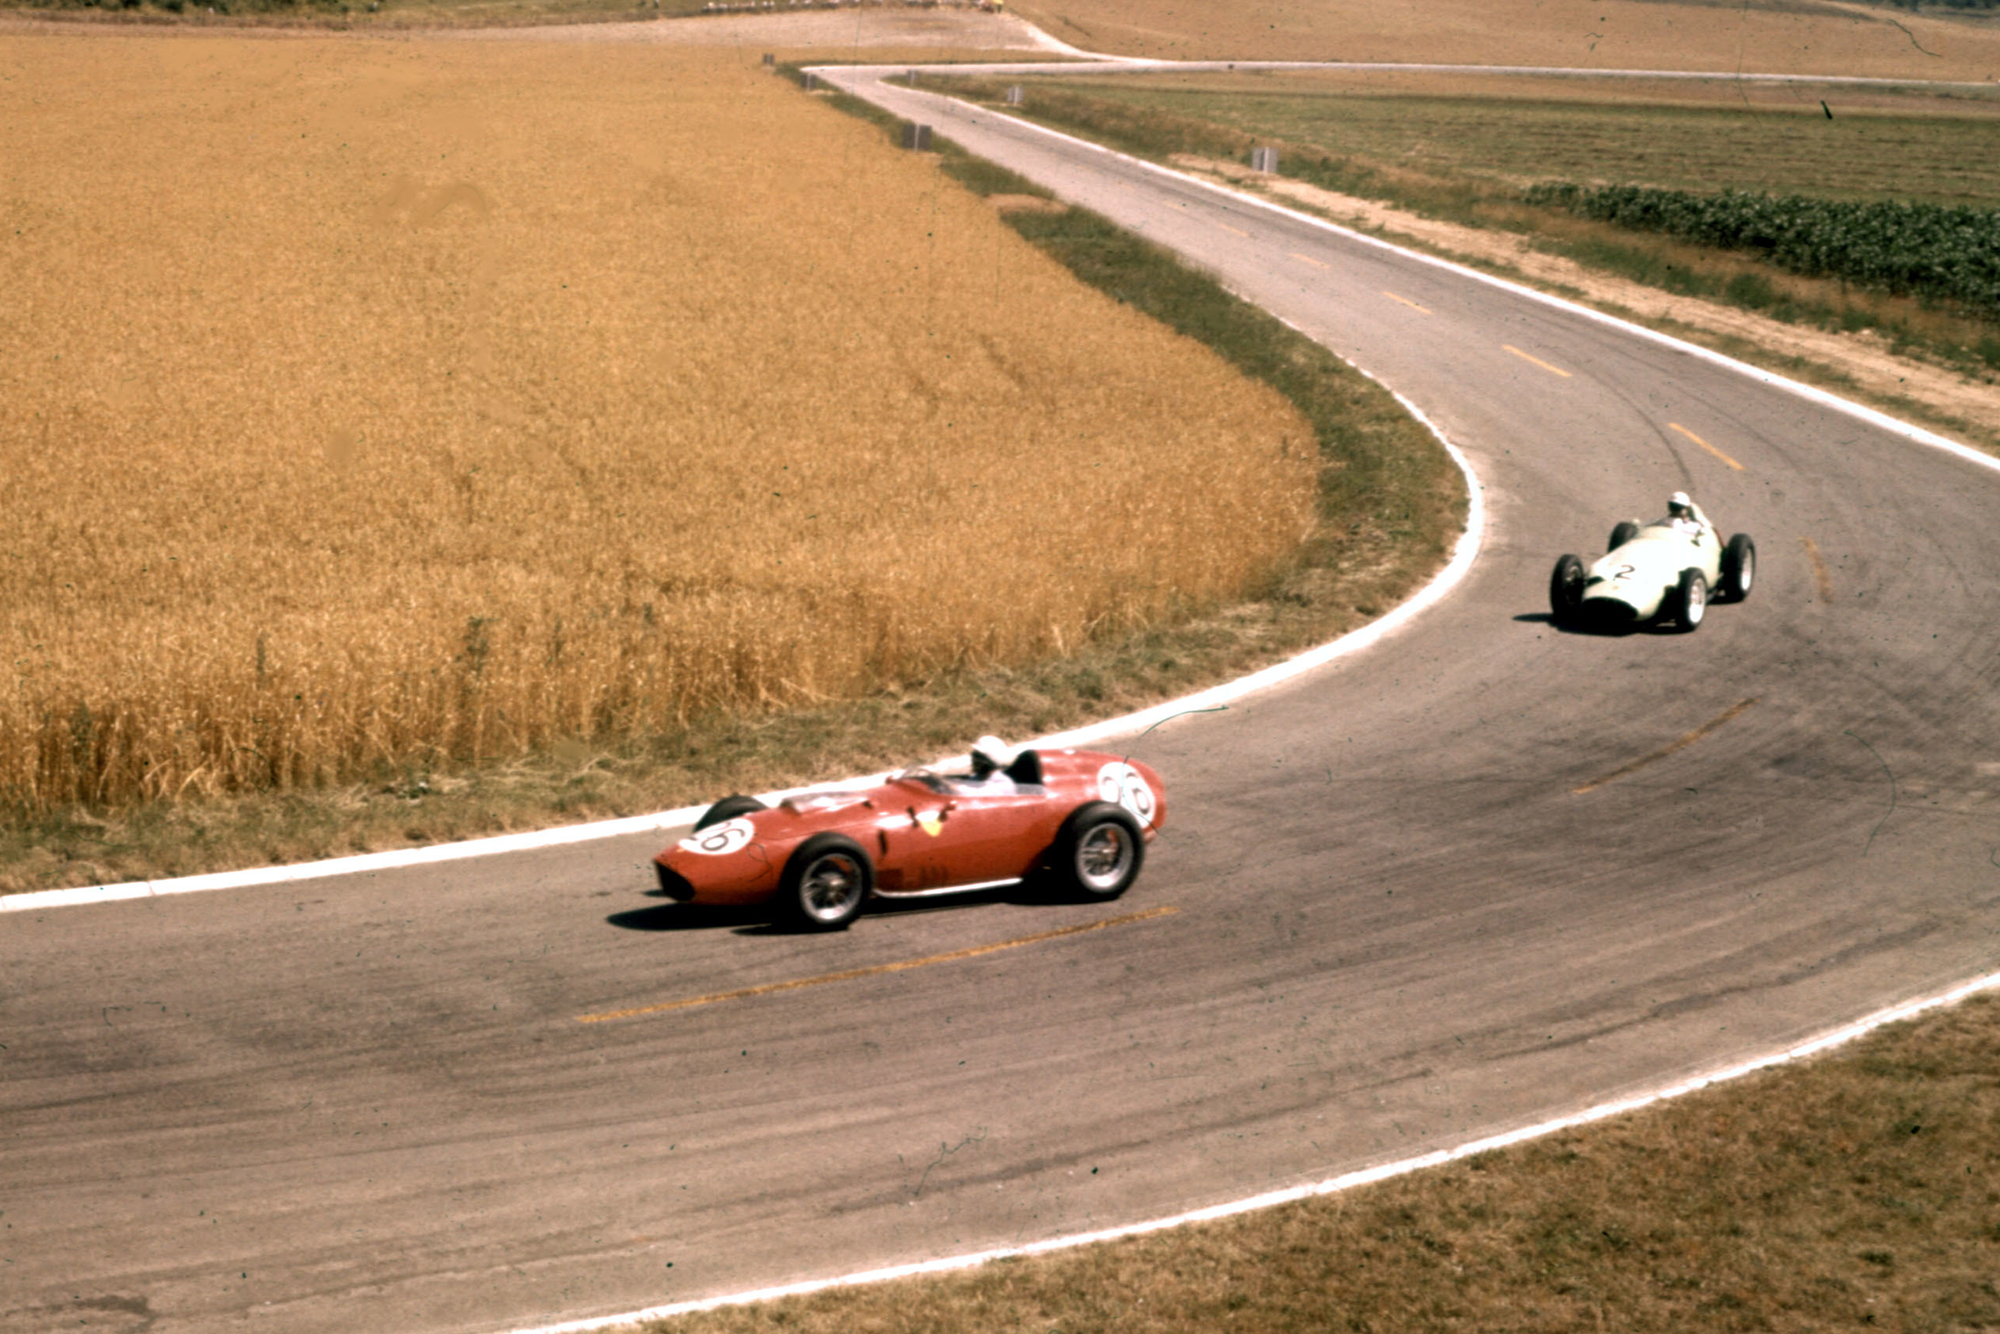 Phil Hill who finished 2nd in a Ferrari Dino 246 leads Stirling Moss in his BRM P25.